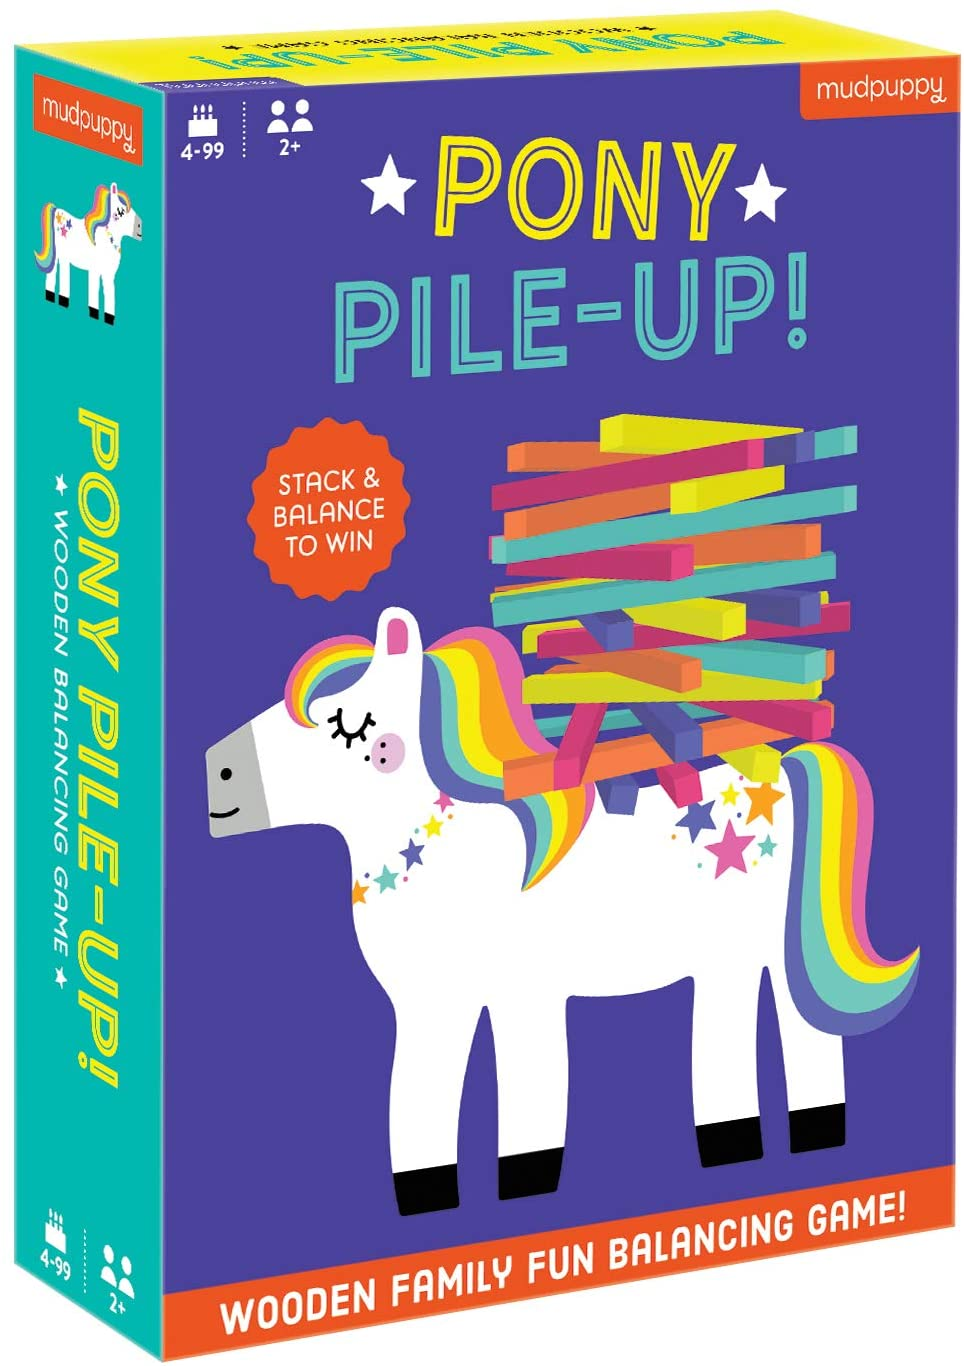 Pony Pile-up! Stack & Balance